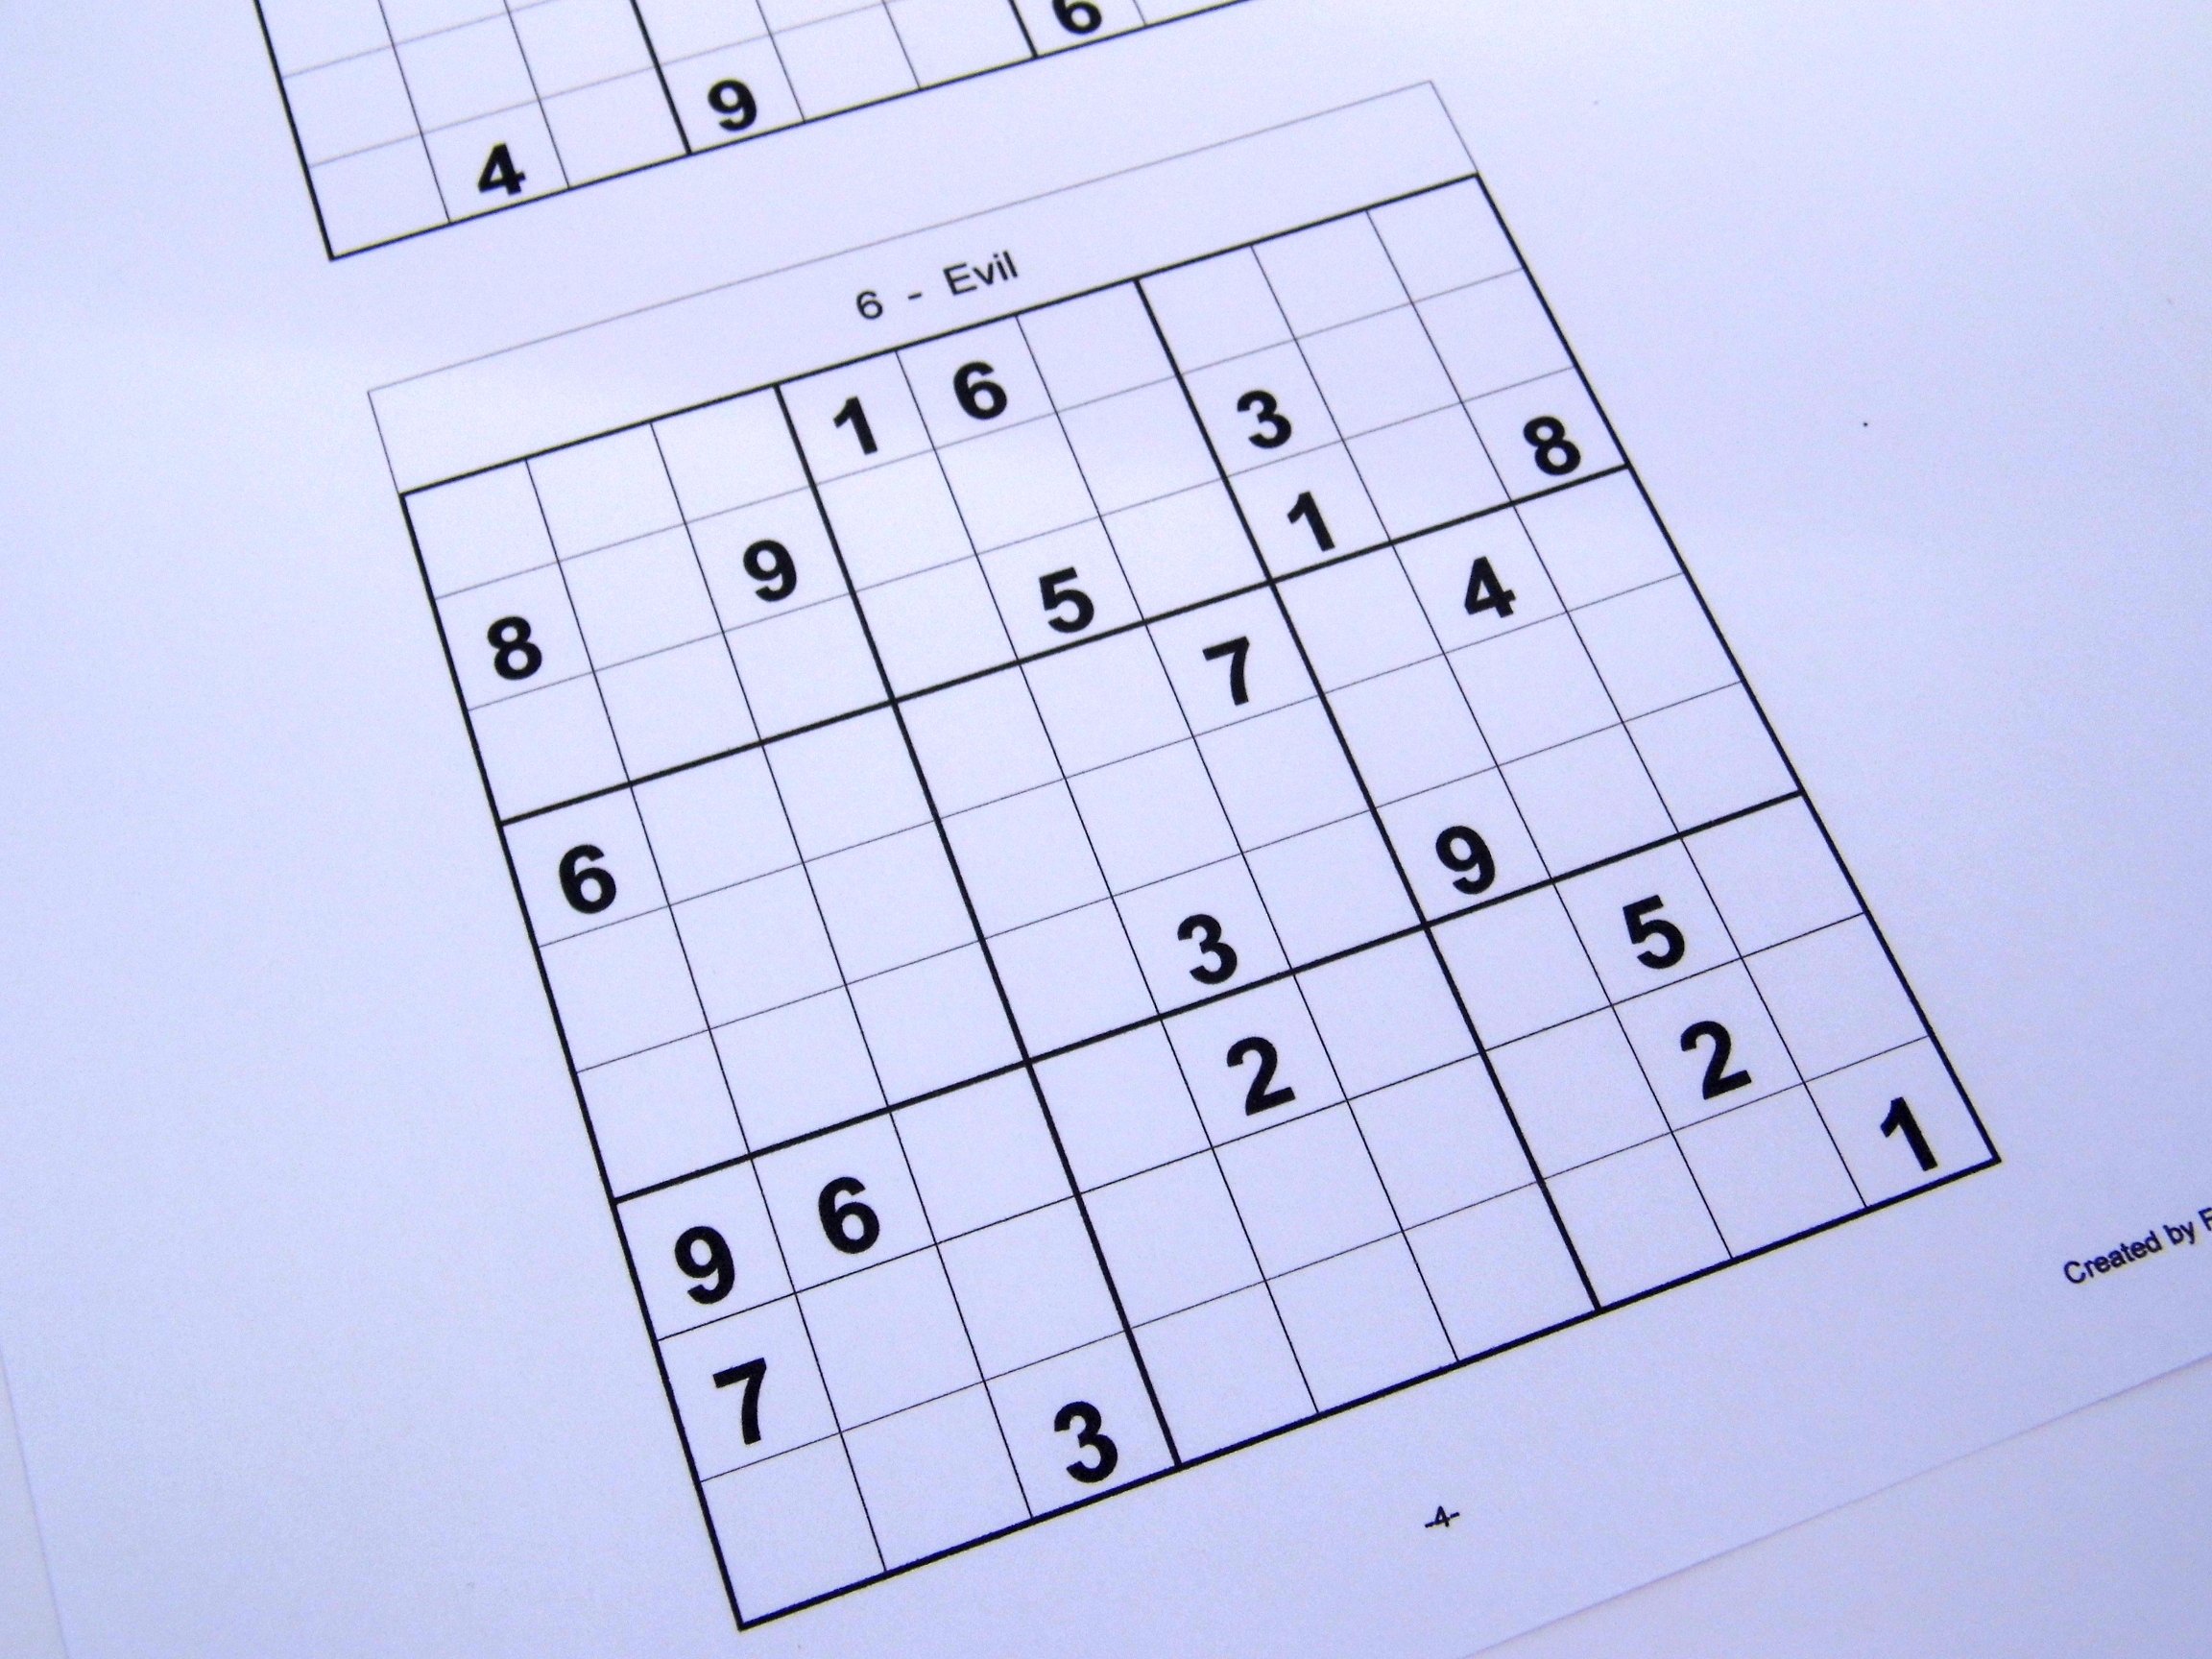 image regarding Sudoku Printable Medium identify Archive Puzzles 24 Medium Sudoku Puzzles Guides 11 towards 20